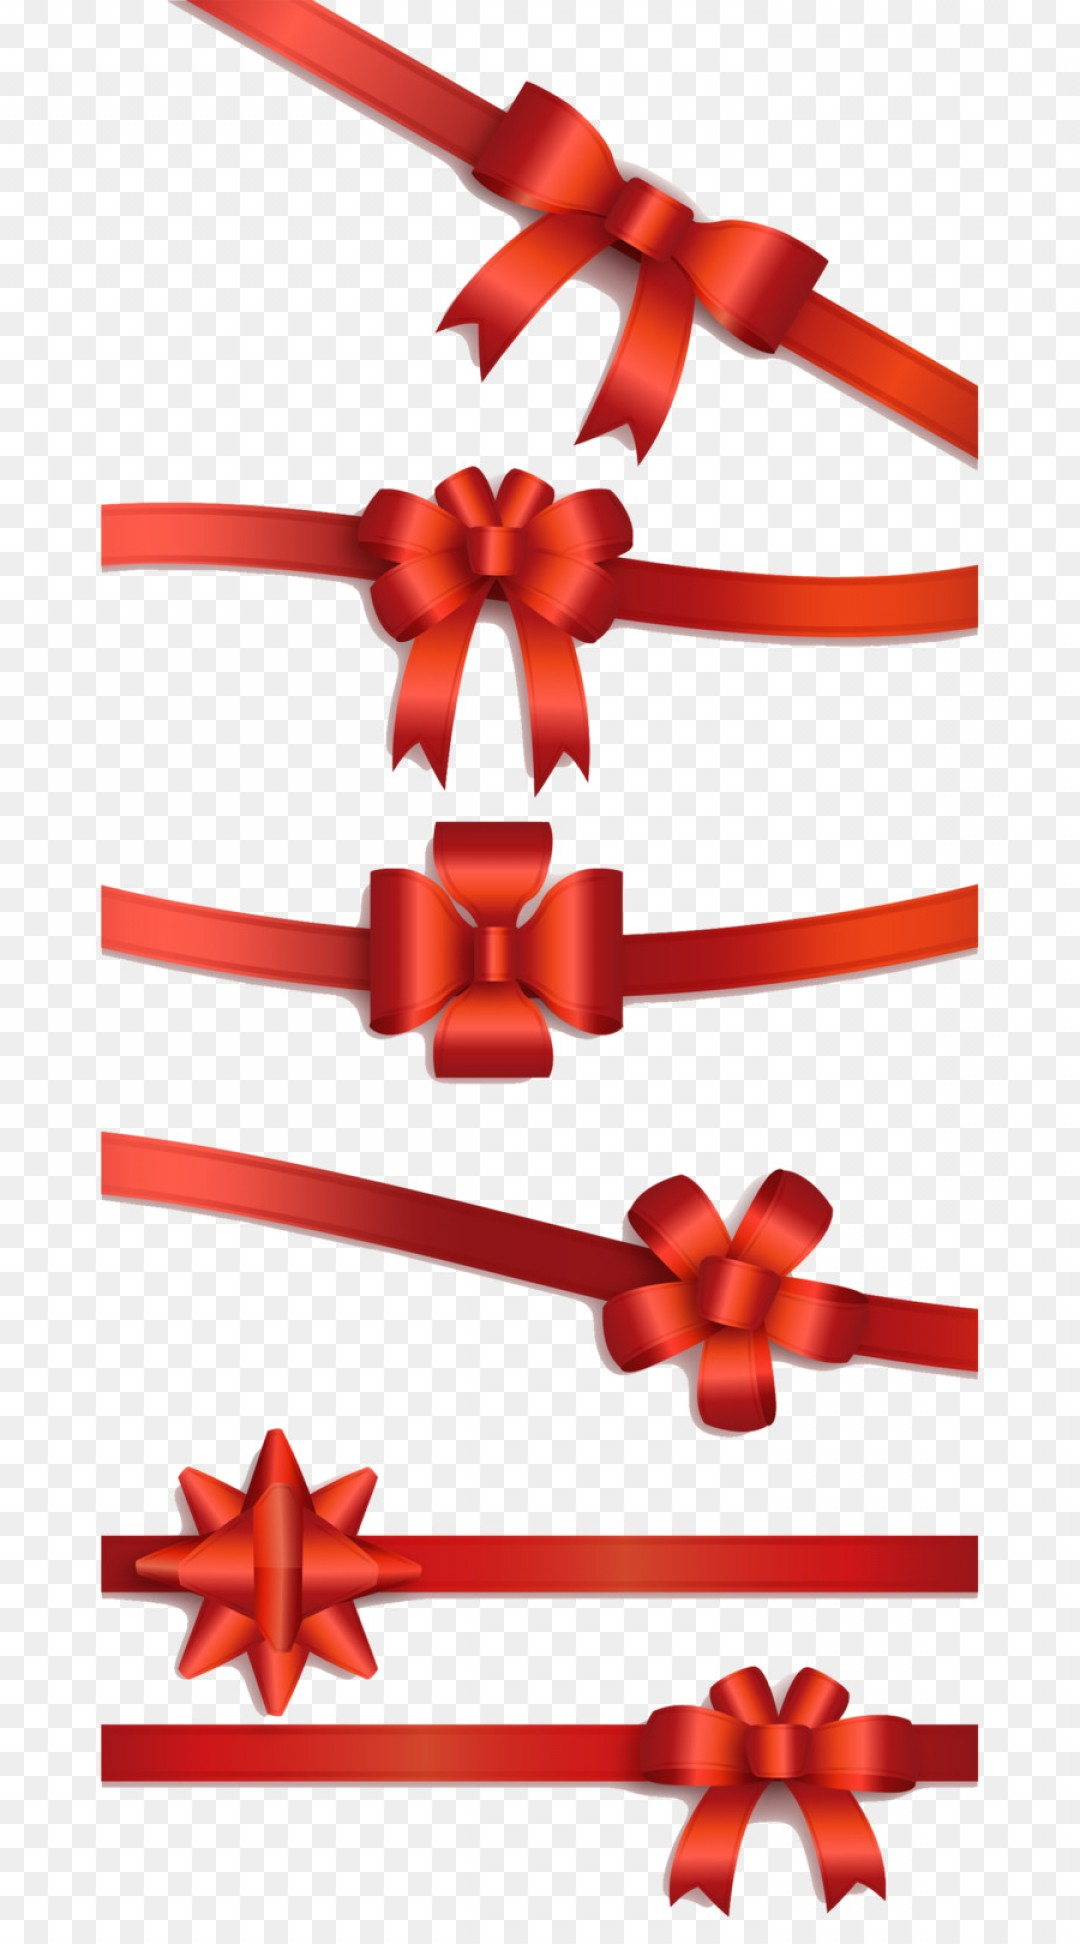 Hair Bow Clip Art Vector: Png Euclidean Vector Download Red Ribbon Bow Vector